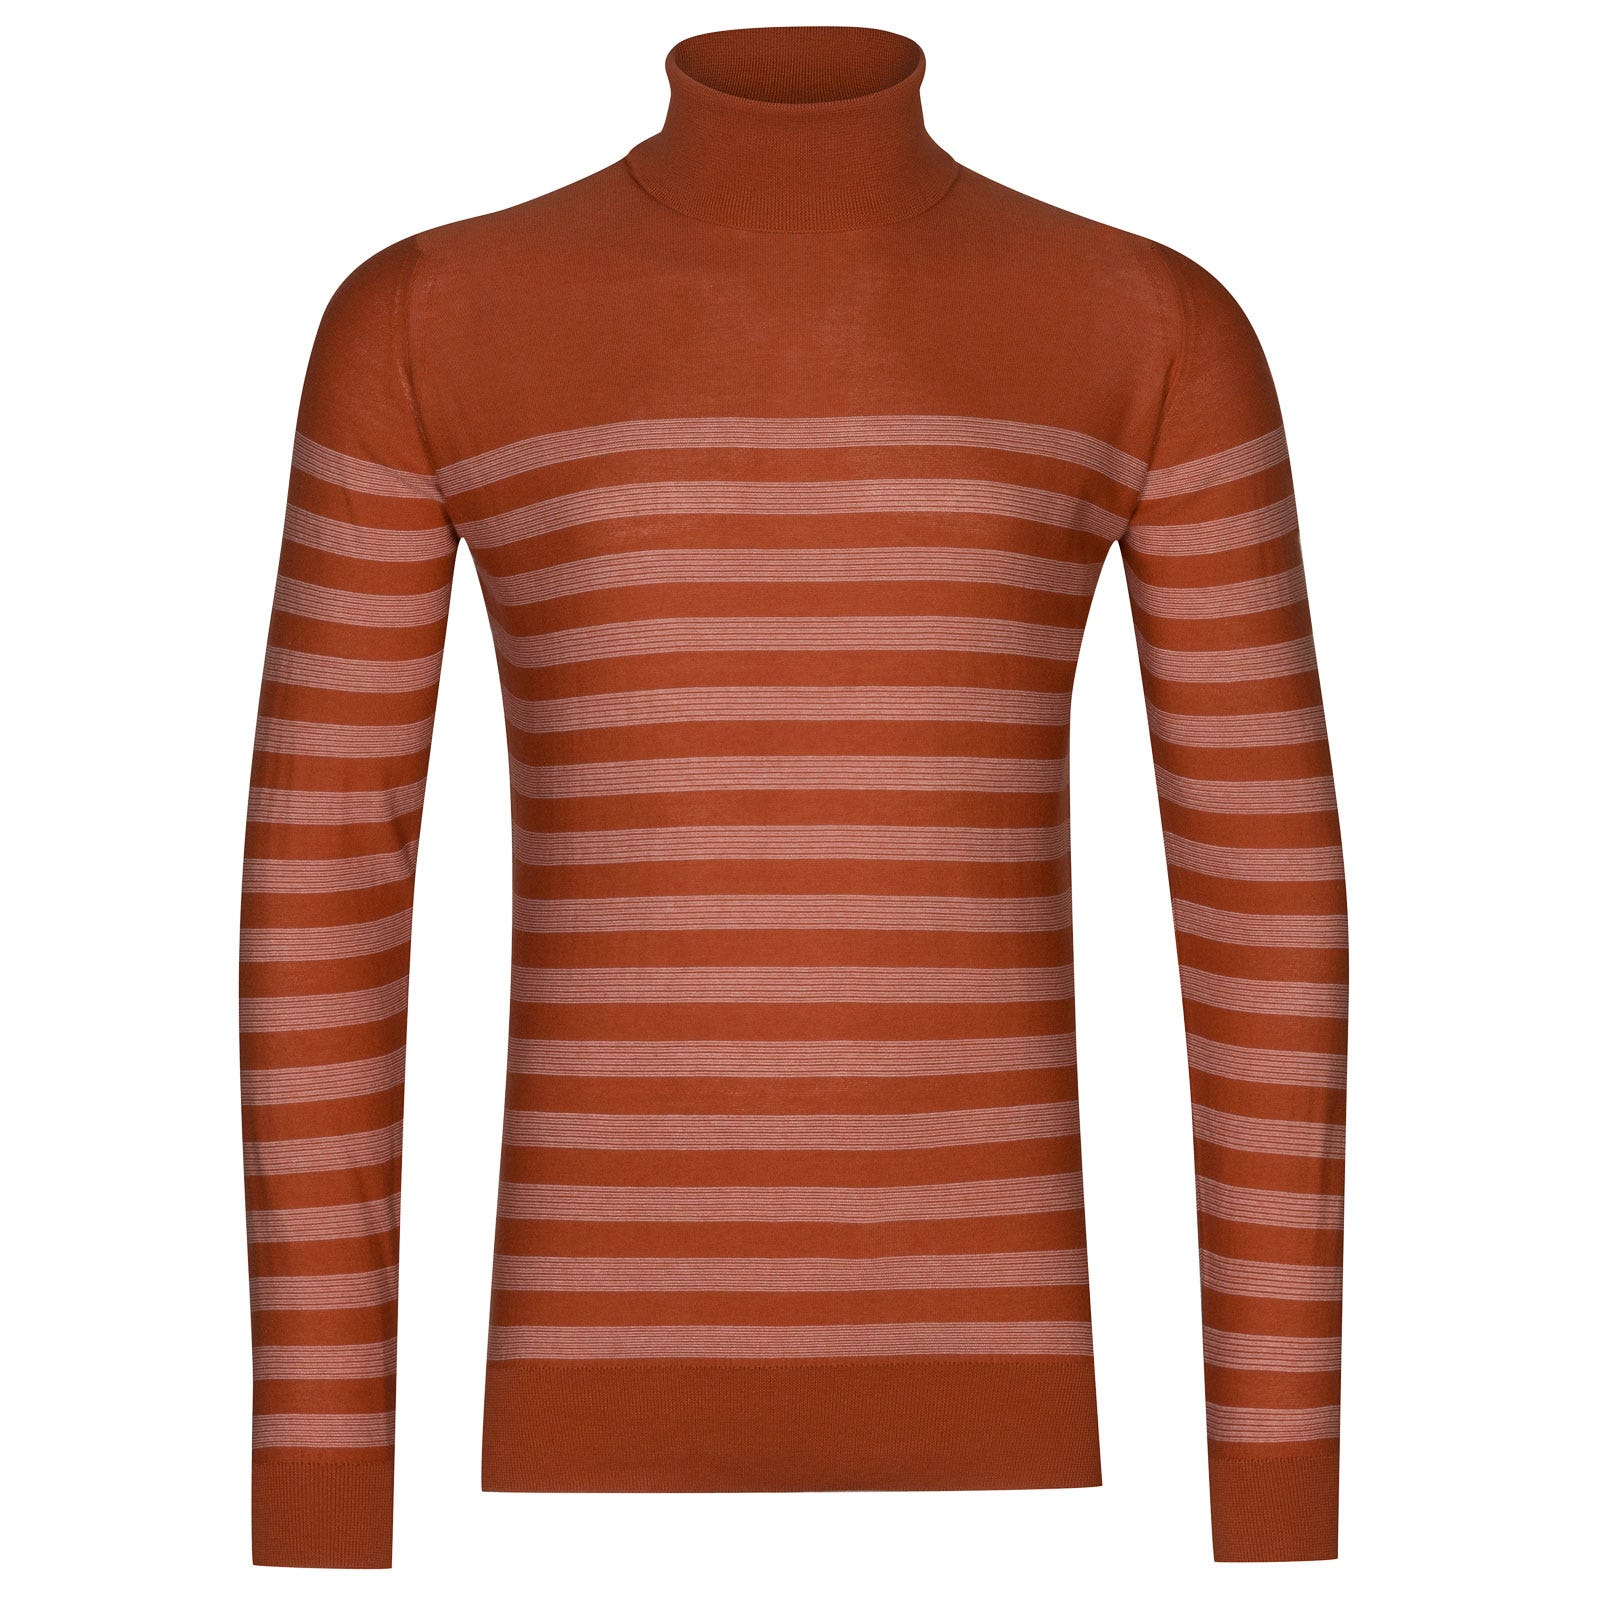 John Smedley tenby Sea Island Cotton Sweater in Flare Orange/White-XXL